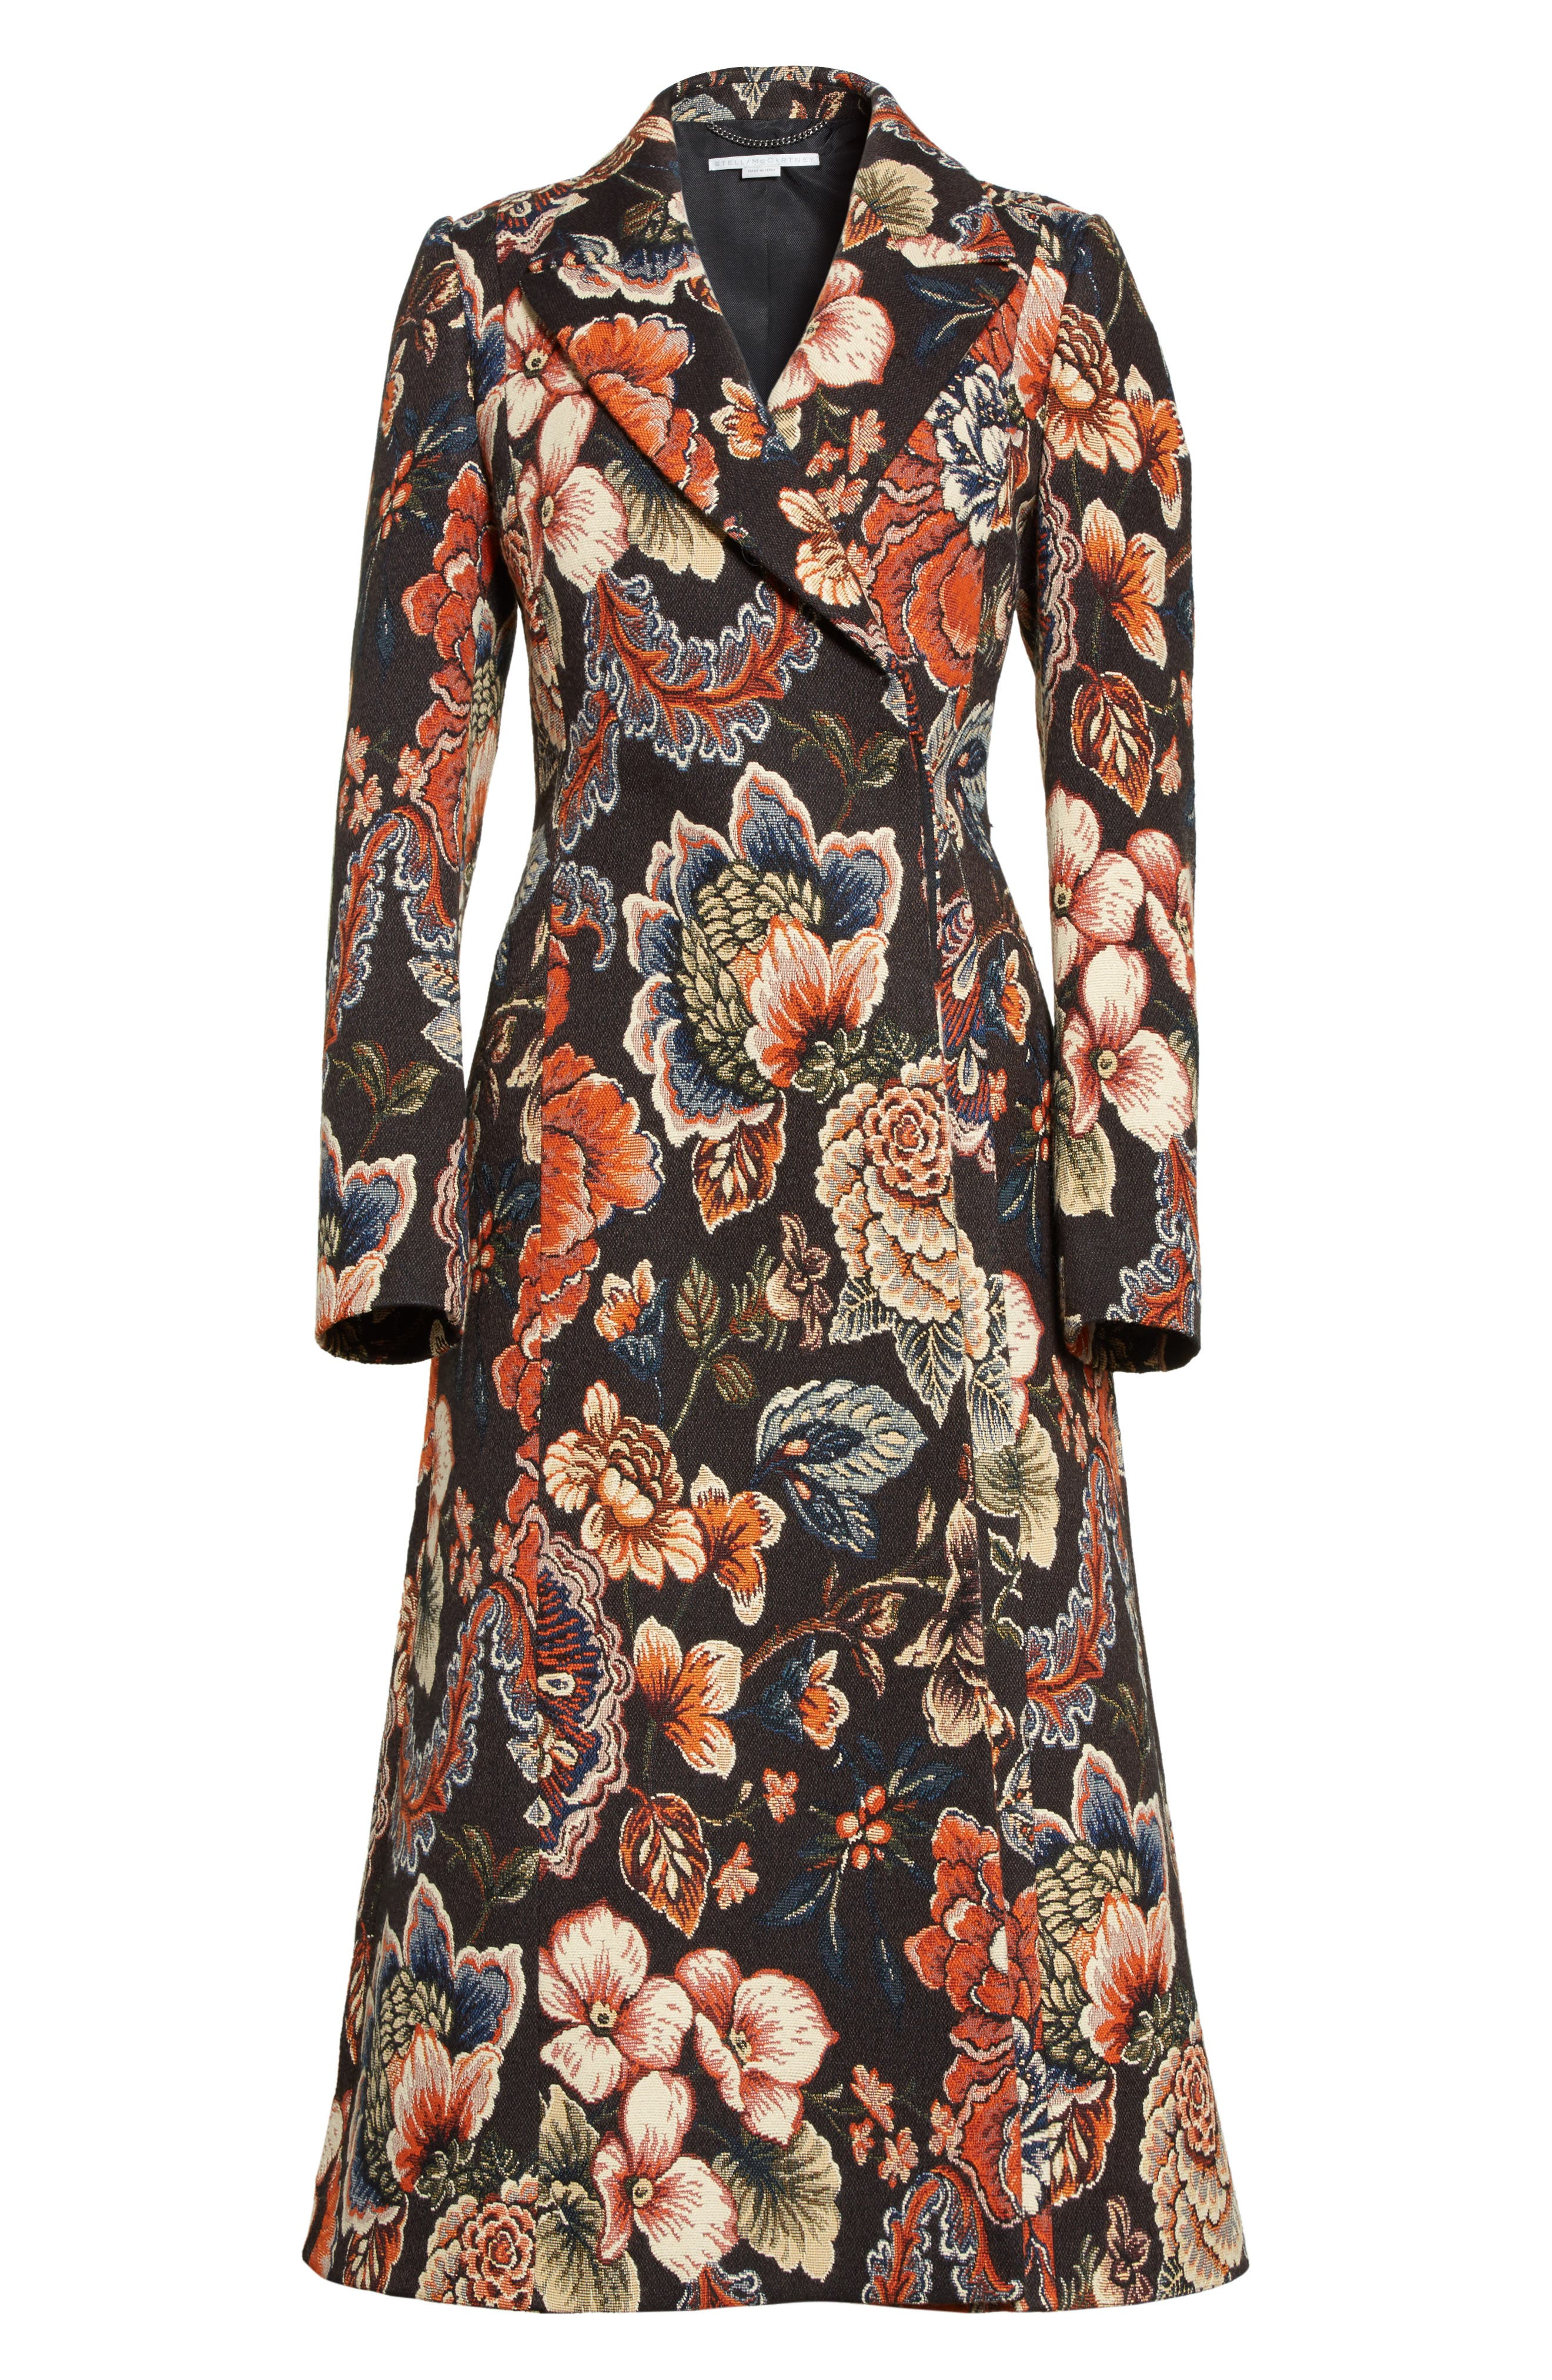 STELLA MCCARTNEY, Floral Tapestry Long Coat, Alternate thumbnail 5, color, 960